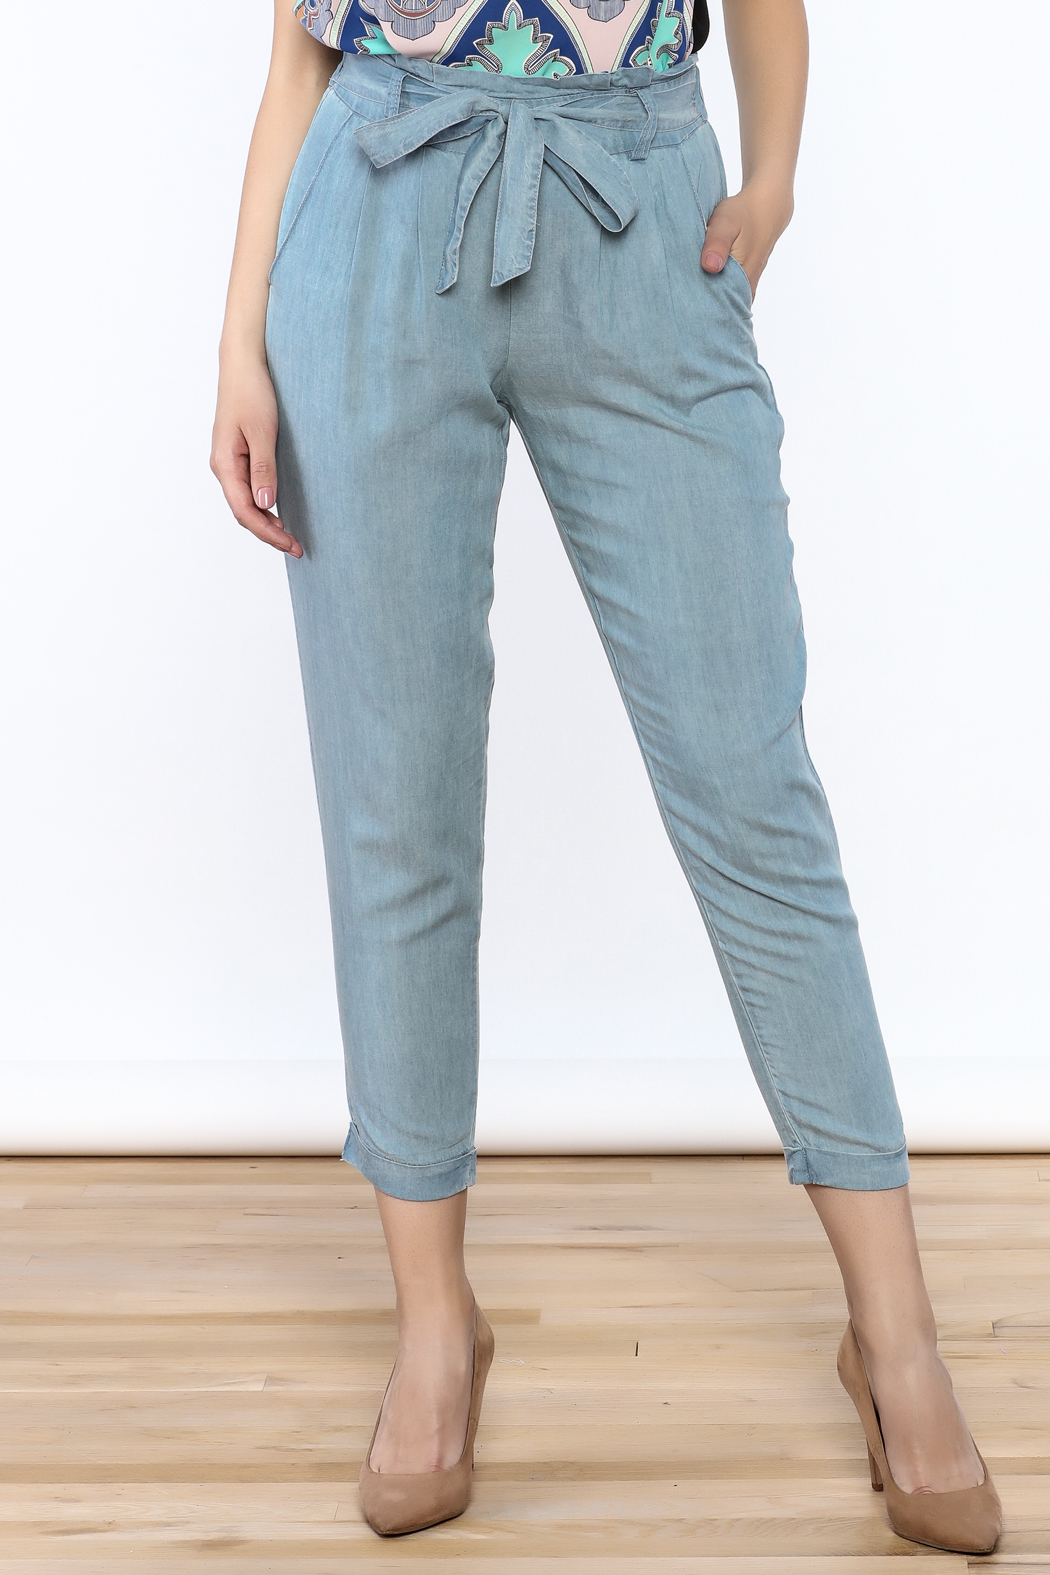 Do & Be Washed Denim Slouch Pants - Main Image